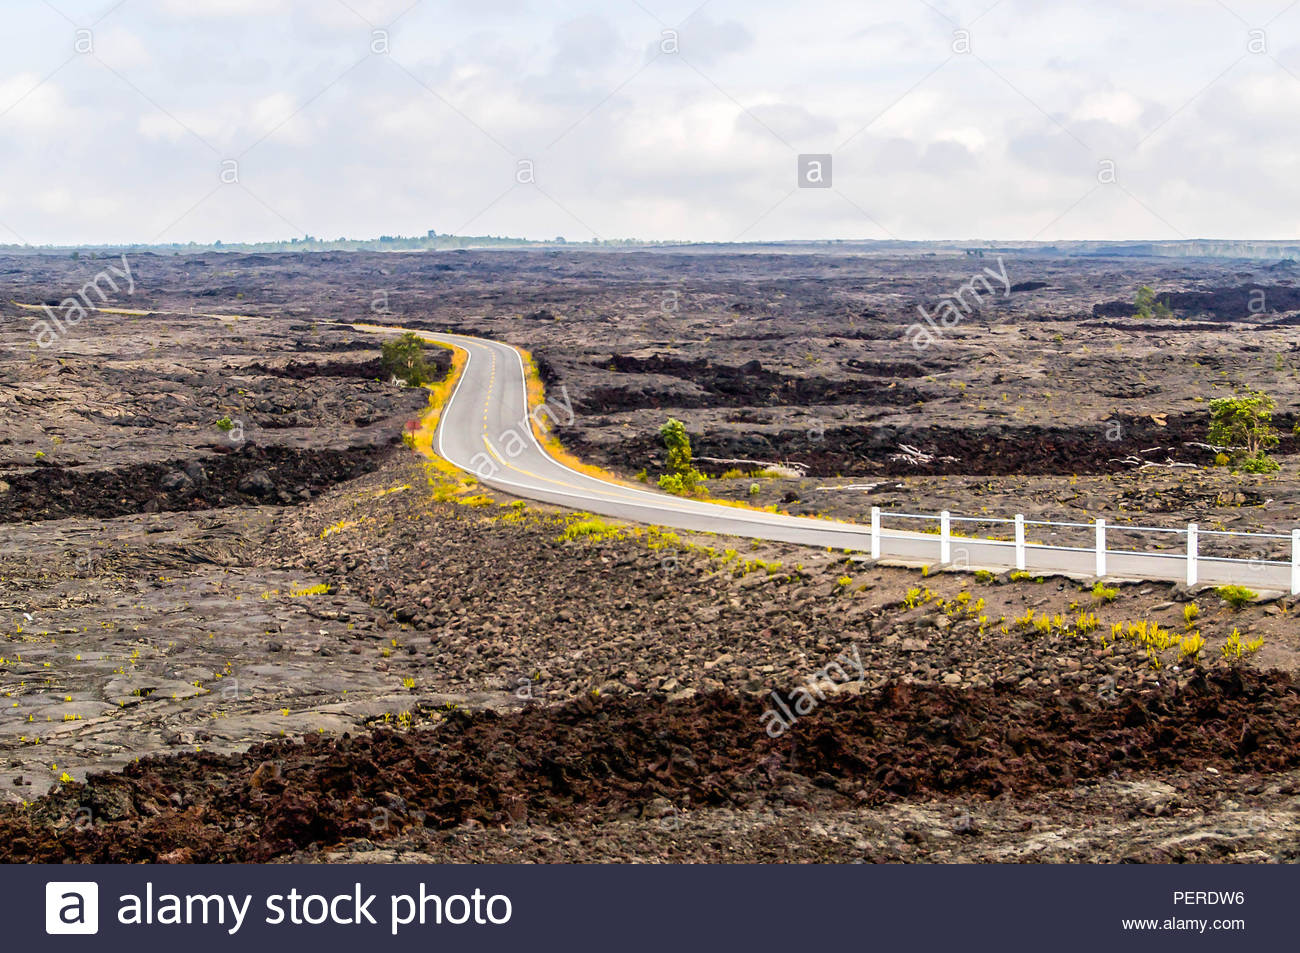 A Lonely Road Curves Through the Lava Fields of Hawaii Volcanoes National Park on the Big Island of Hawaii - Stock Image